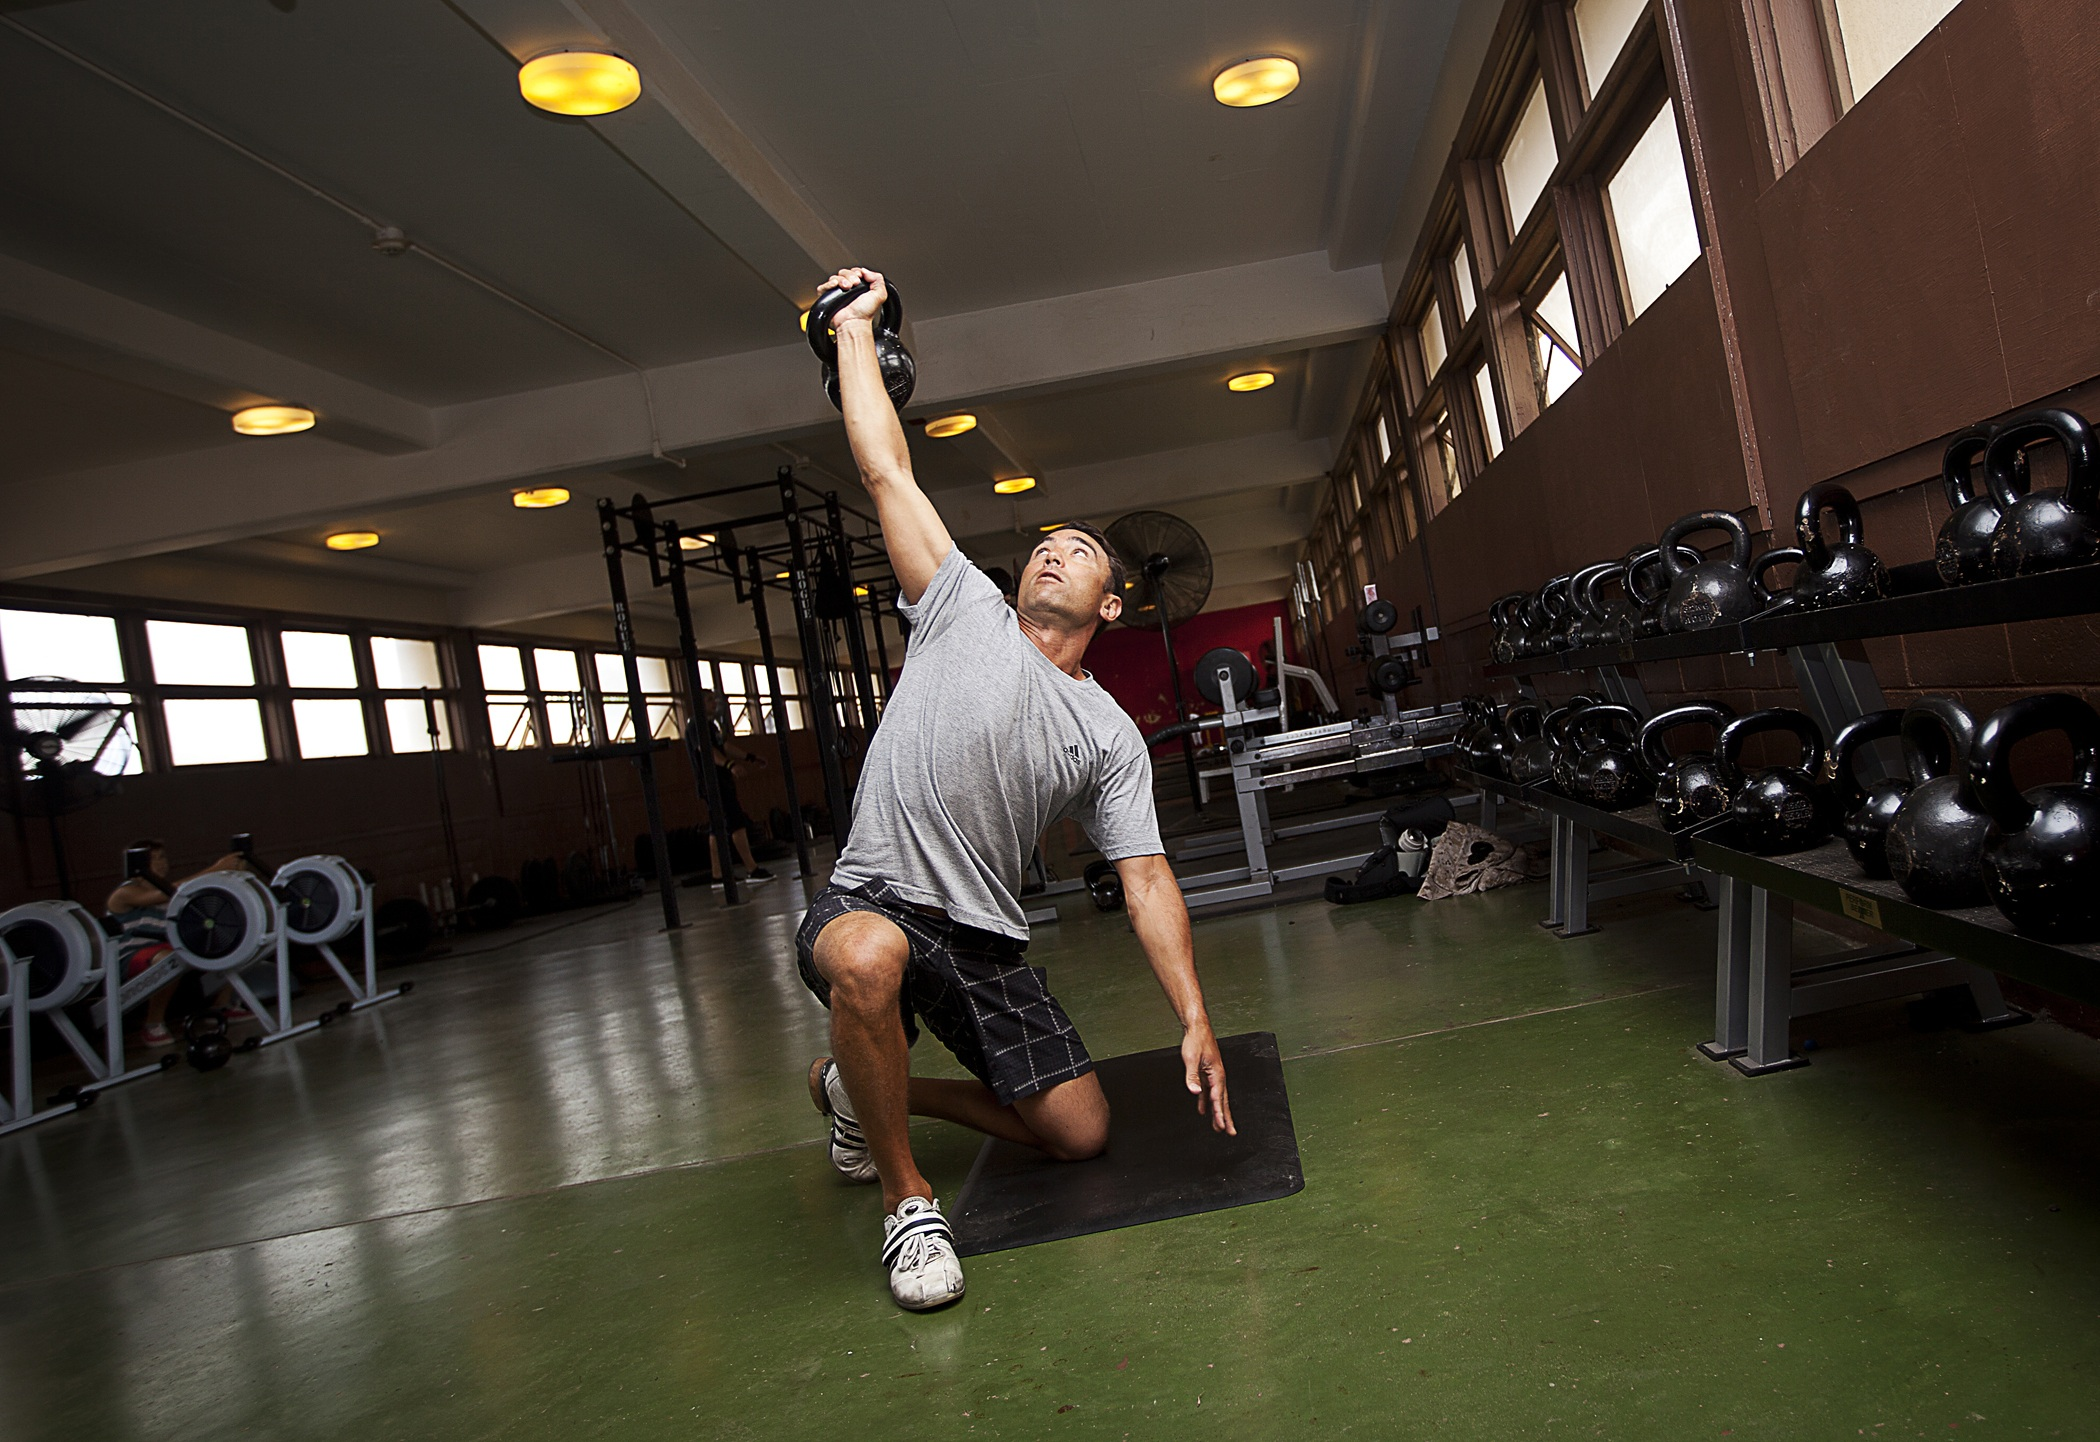 Kettle bell exercises should be perfected prior to adding in heavy loads. In free weights, technique is of extreme importance.